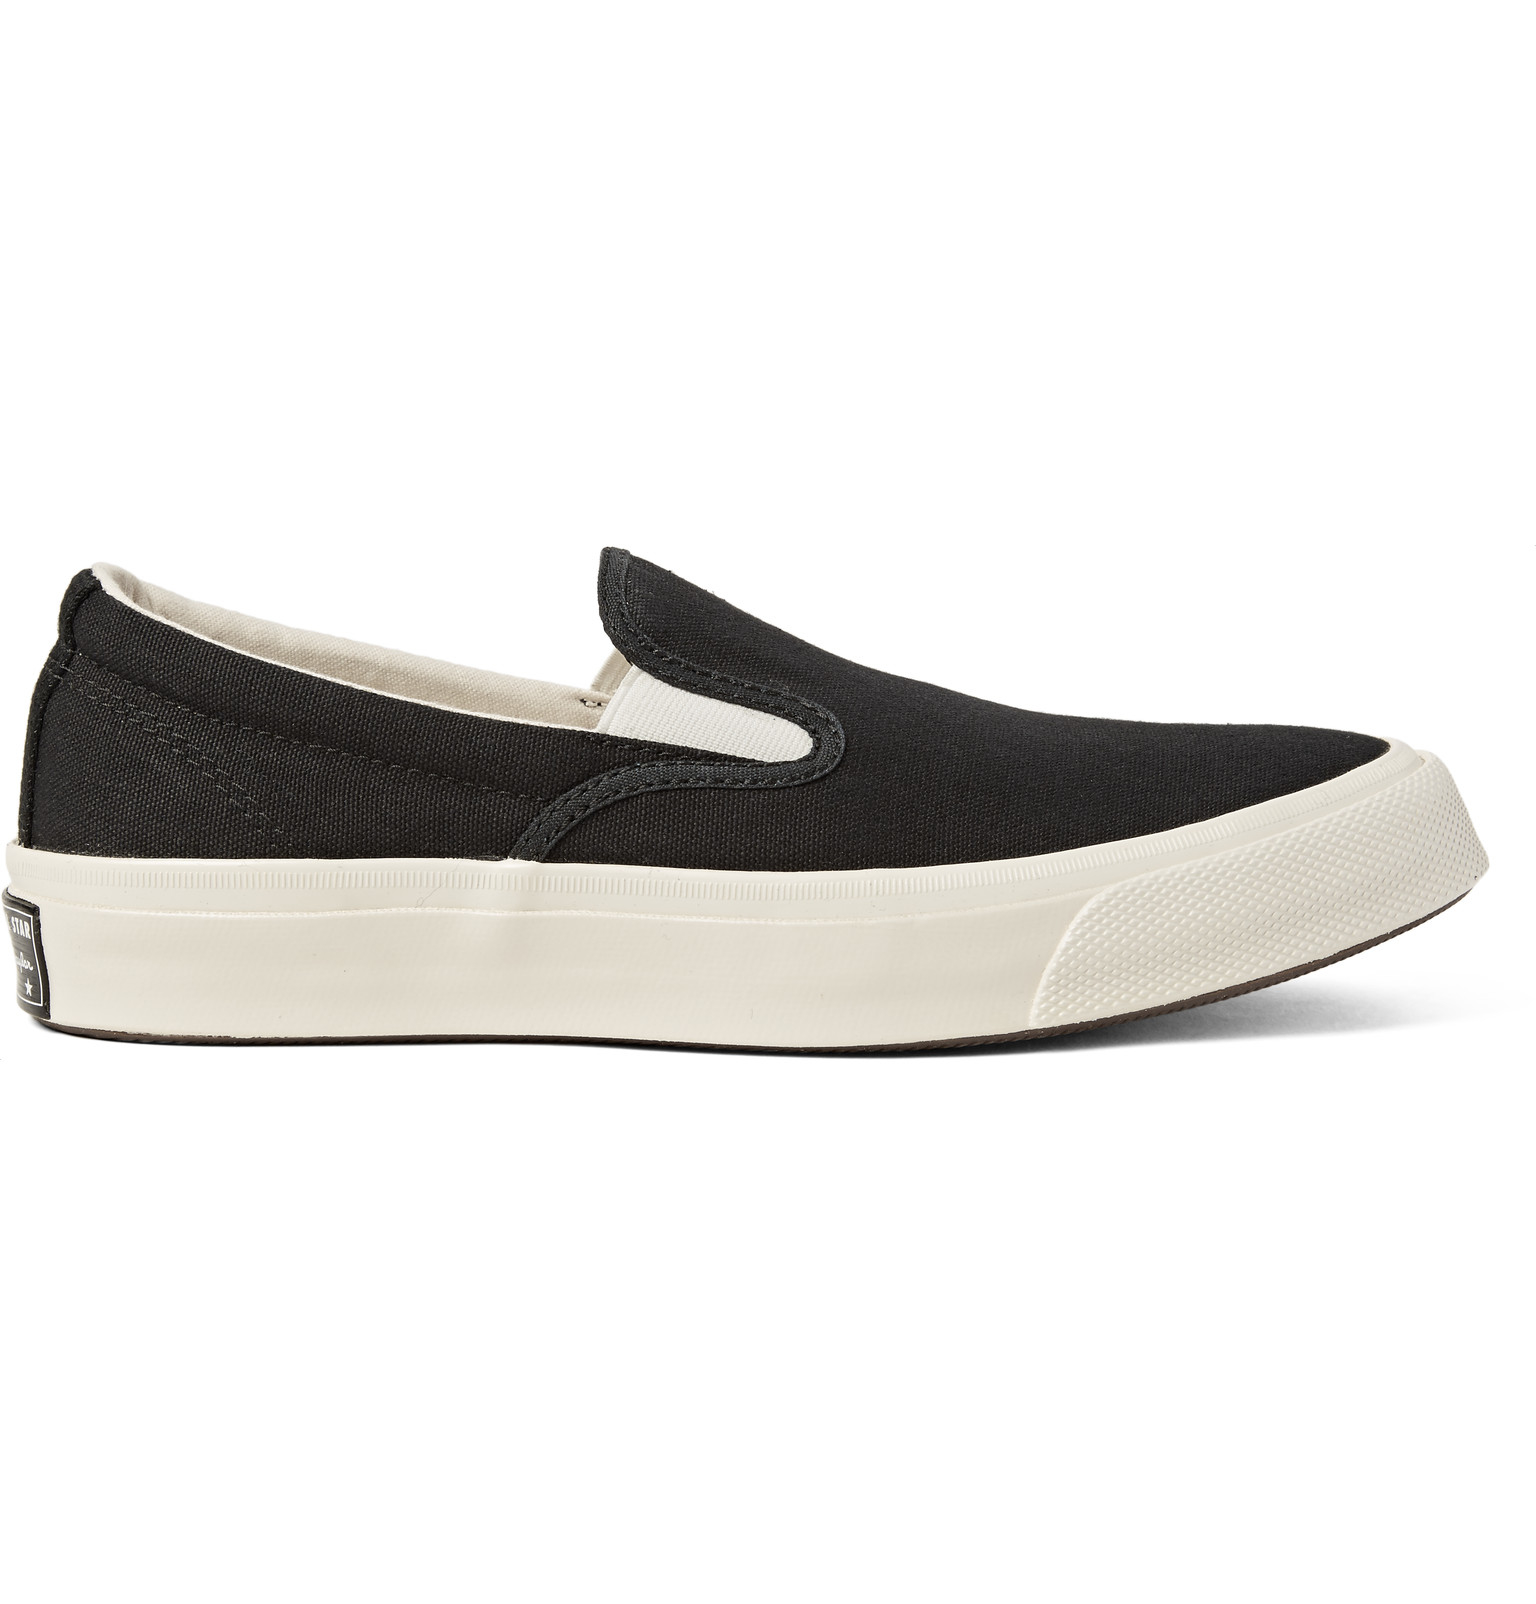 58b207f67a4269 Converse Deck Star  67 Canvas Slip-on Sneakers in Black for Men - Lyst